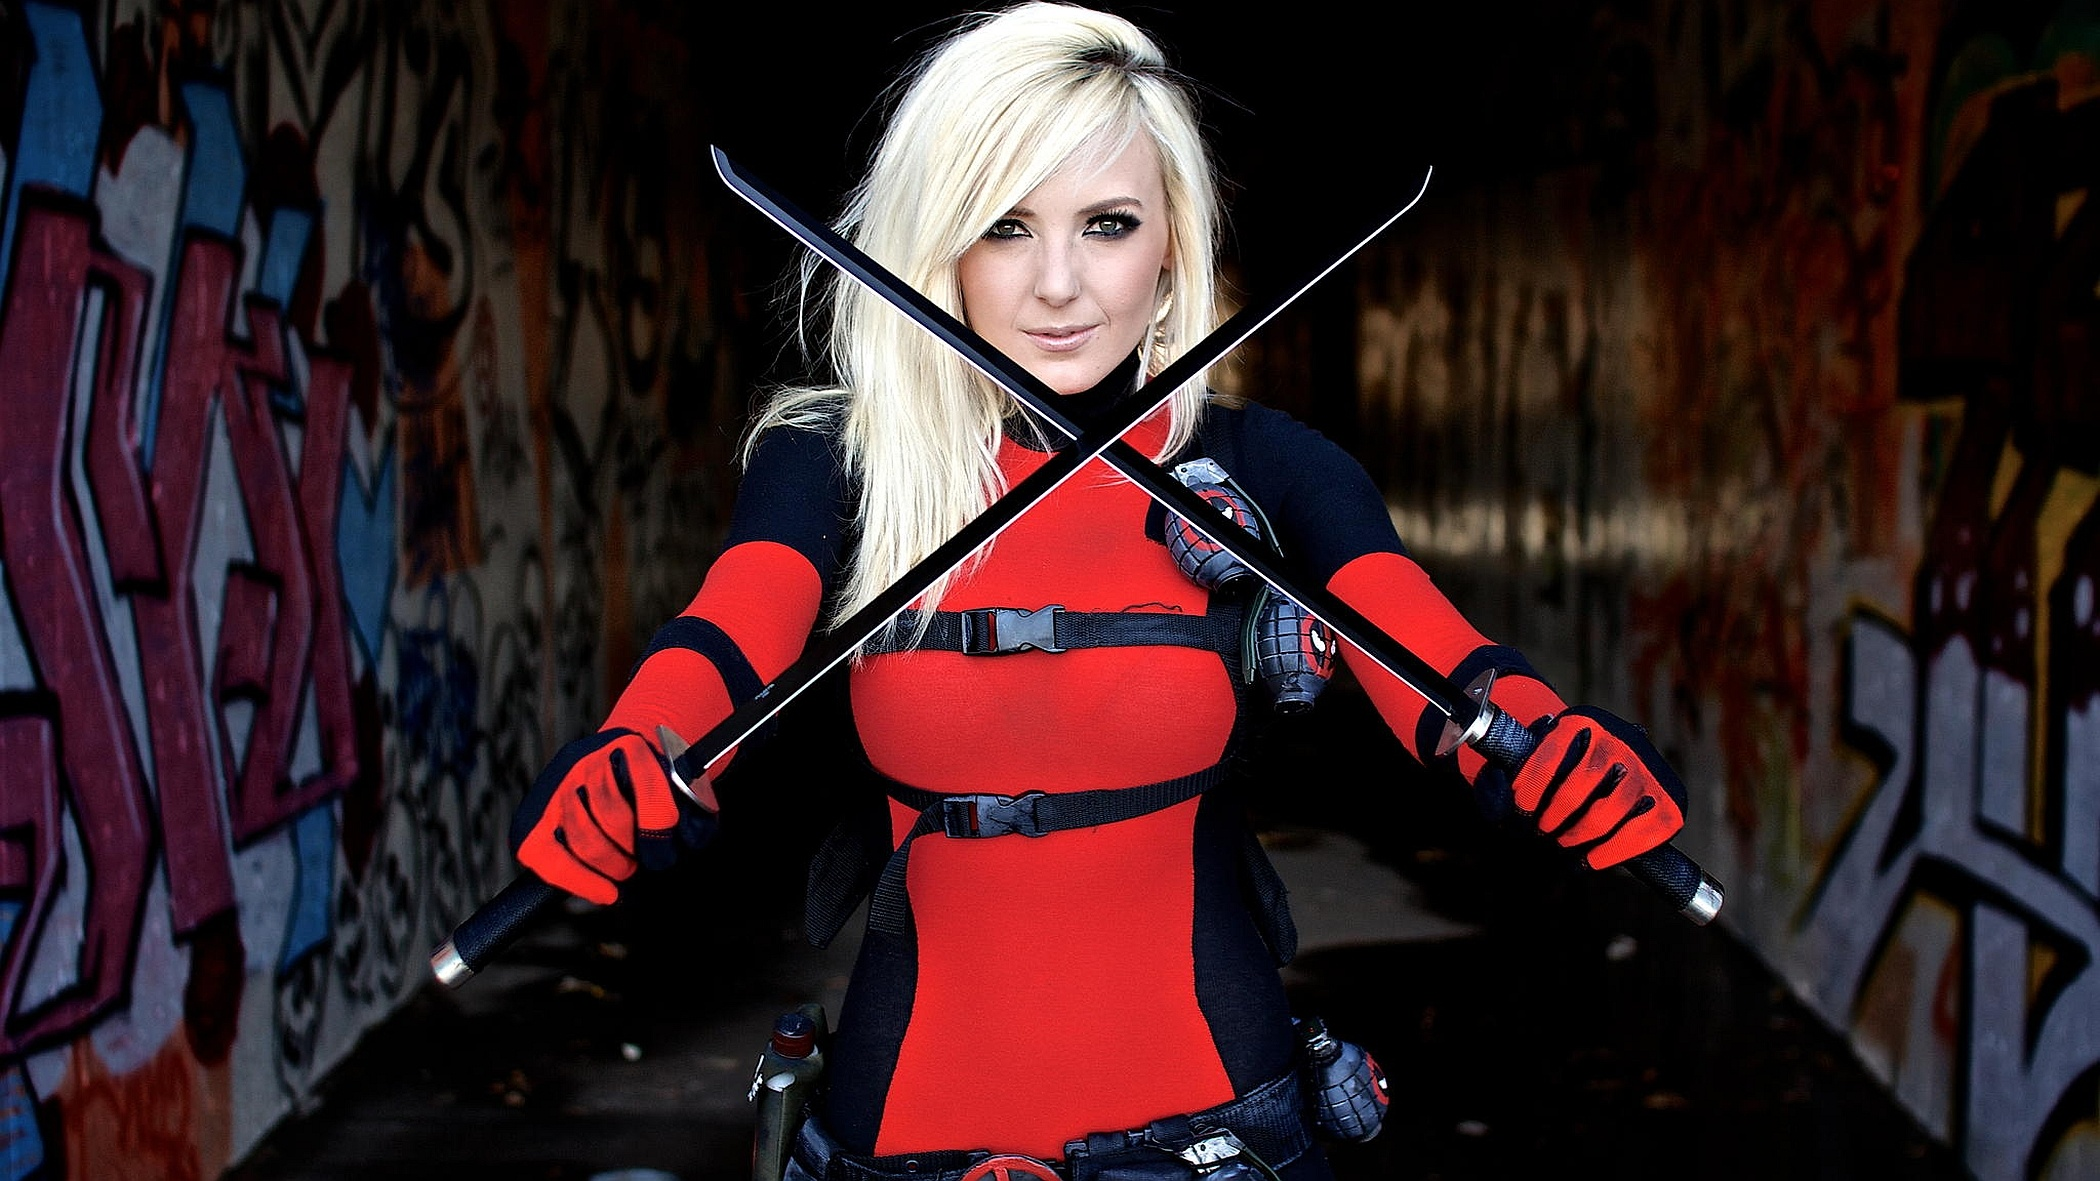 Nerd Out With These Hot Cosplay Girls